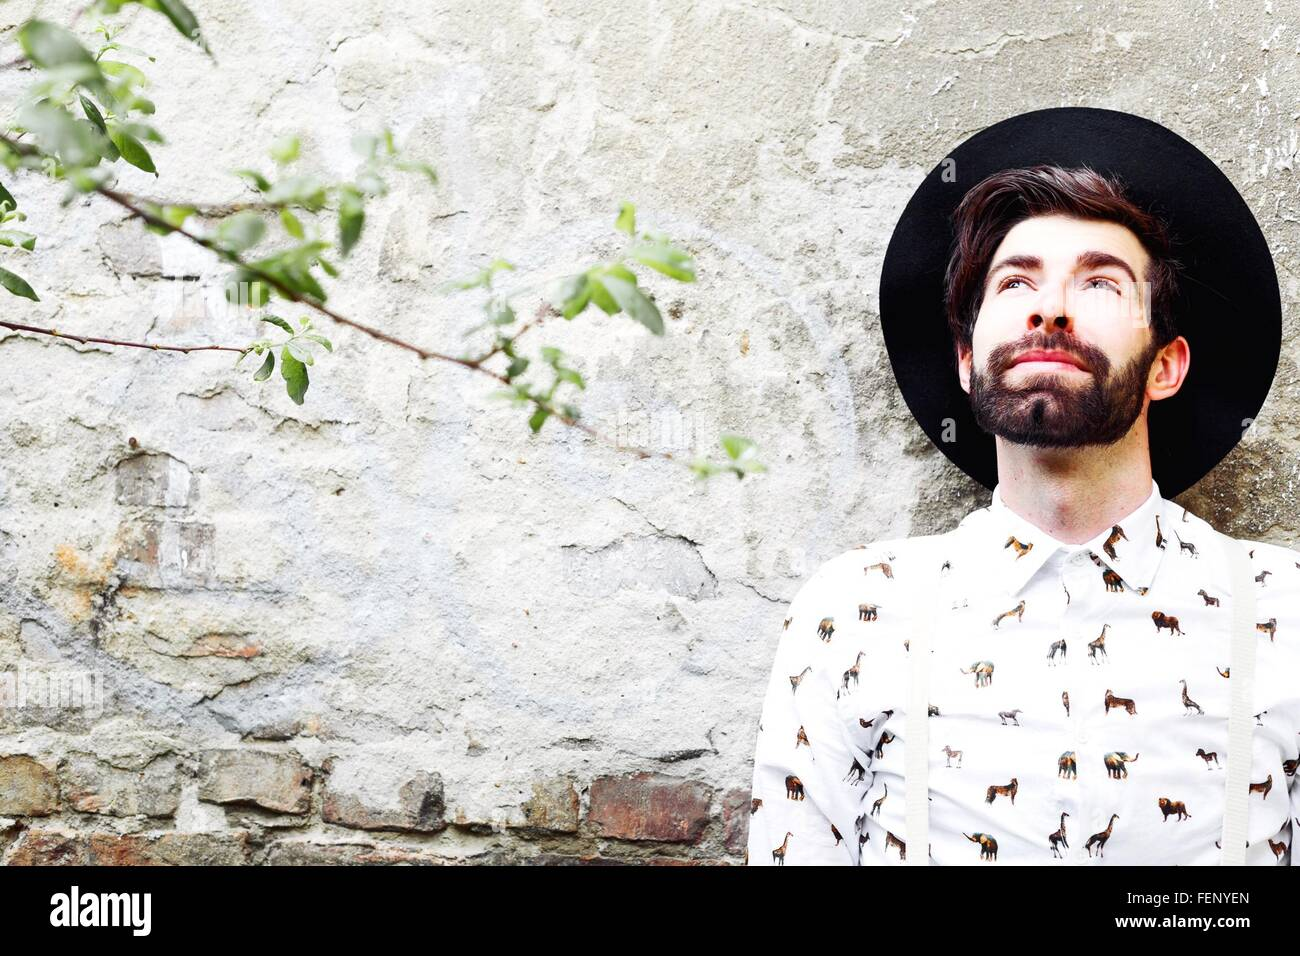 Man Wearing Hat Looking up Photo Stock